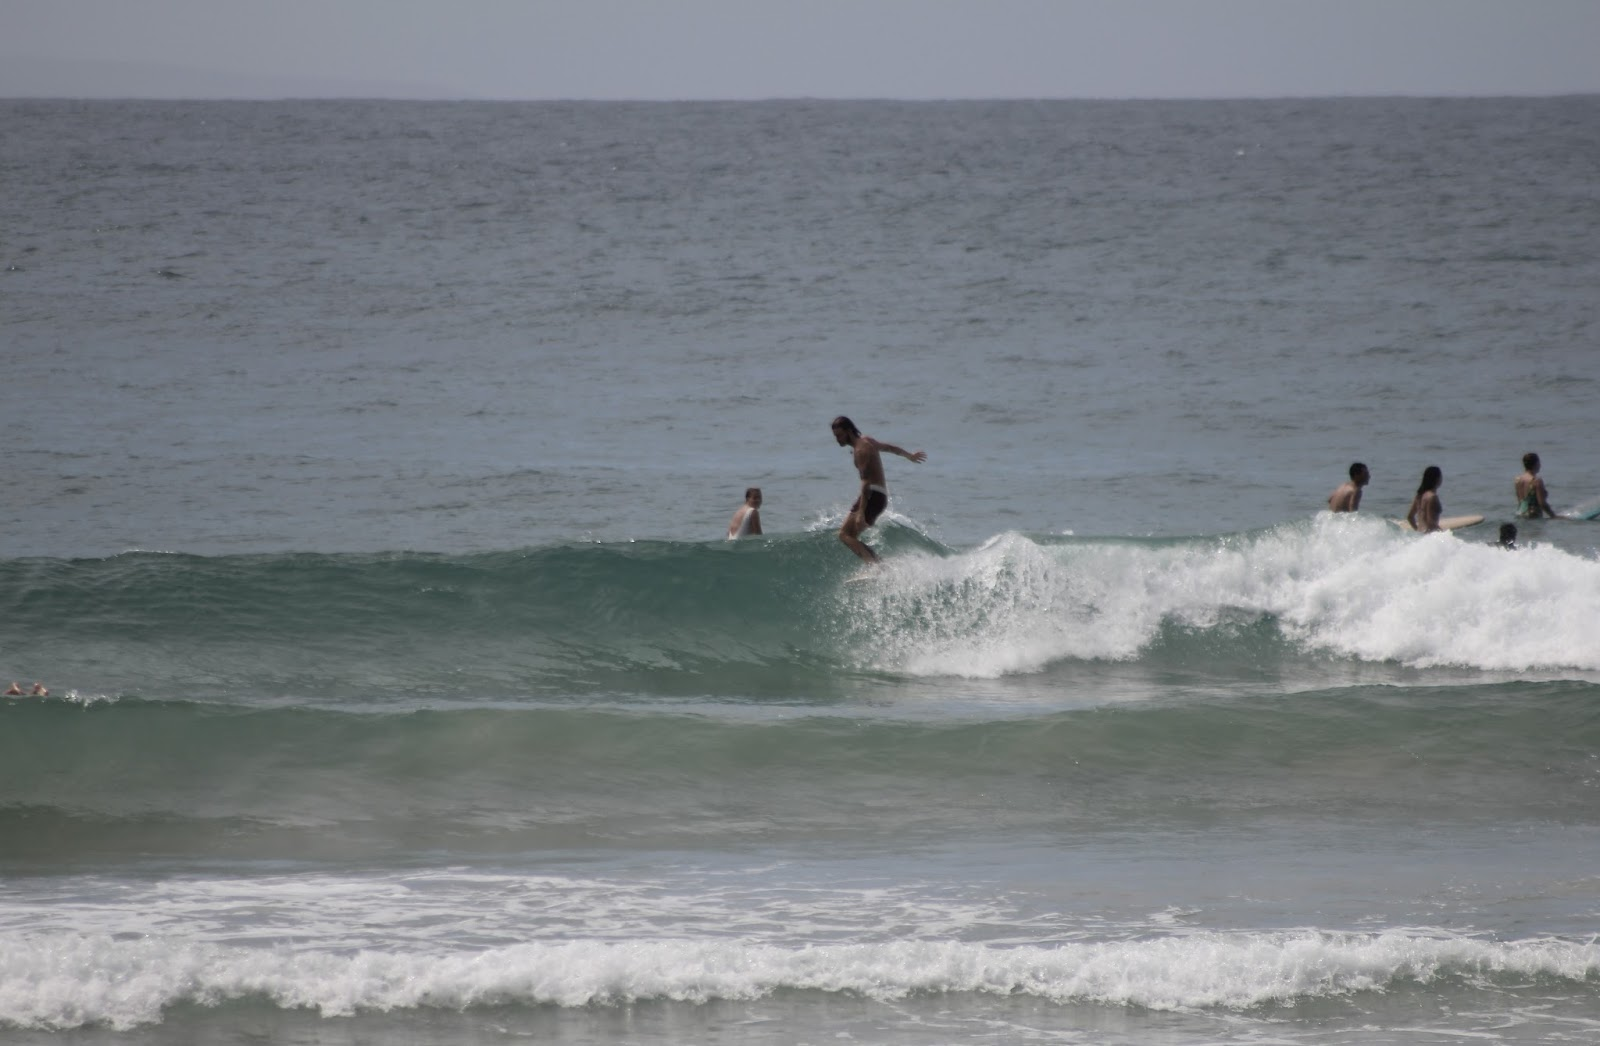 11-03-2016-australia-siebert-surfboards-17